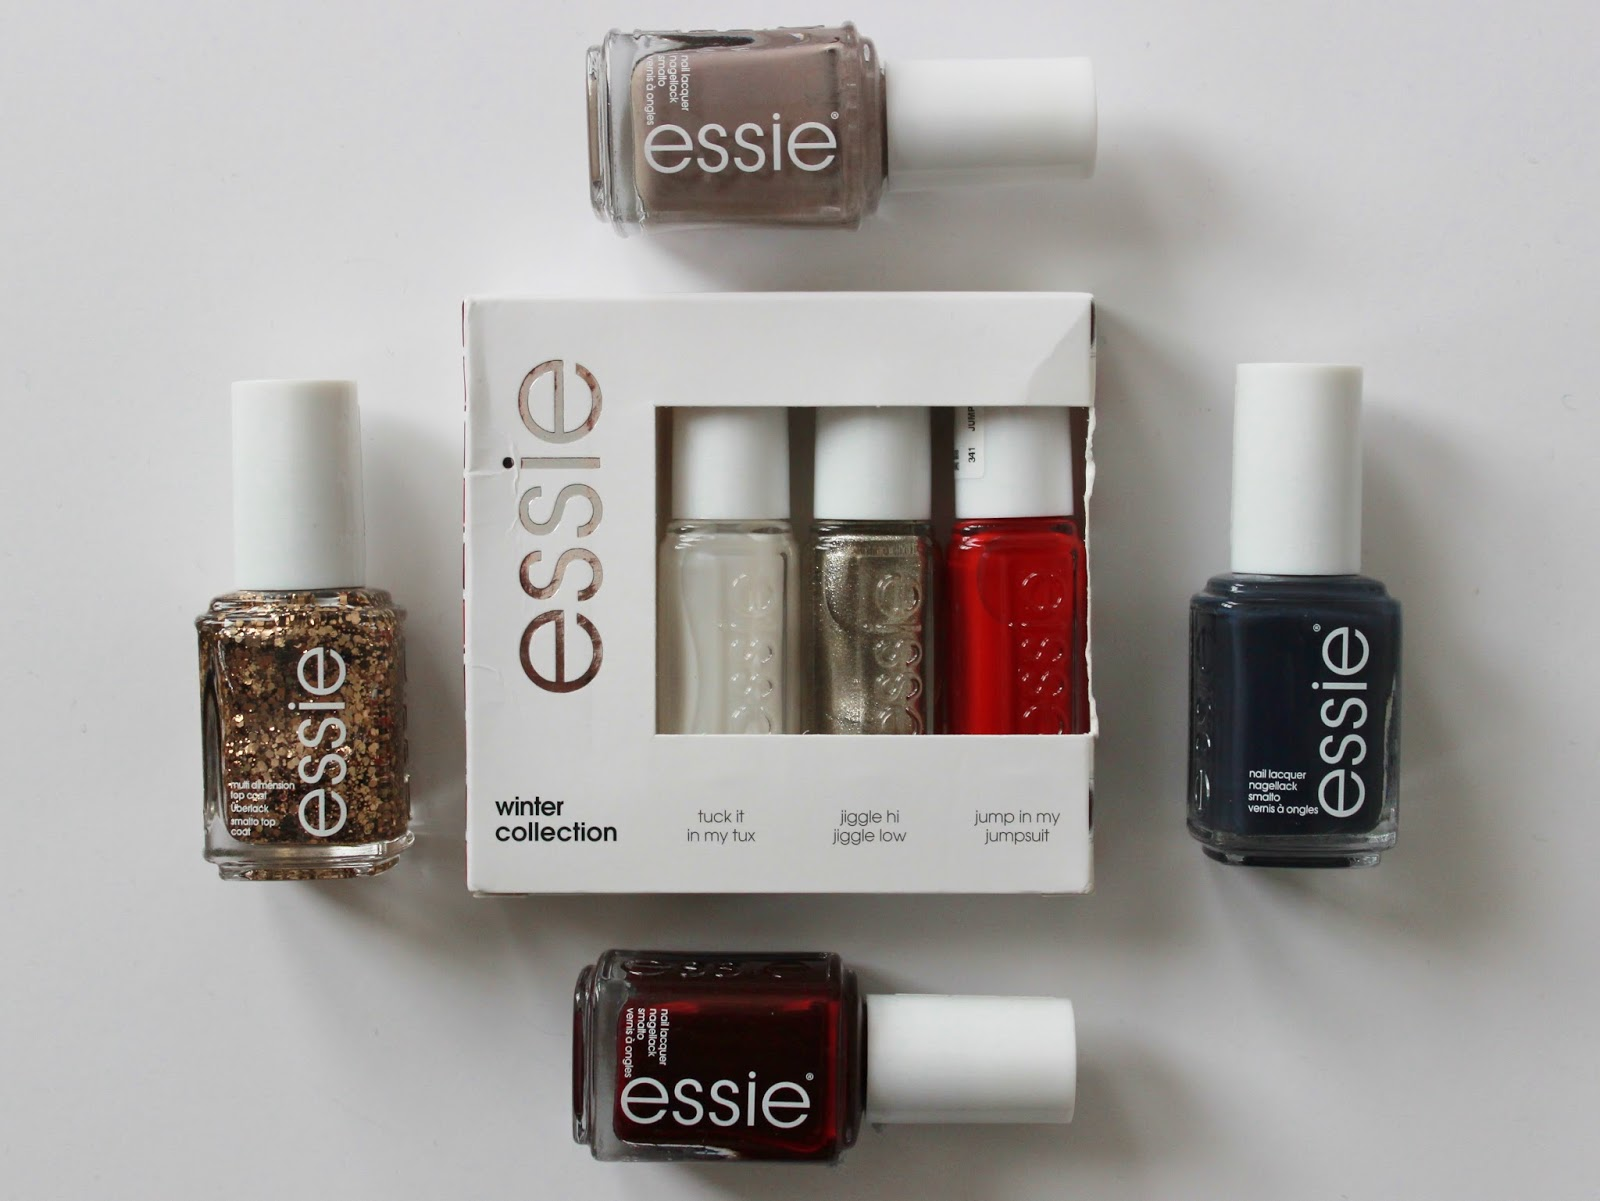 Essie free nail polish gift with purchase